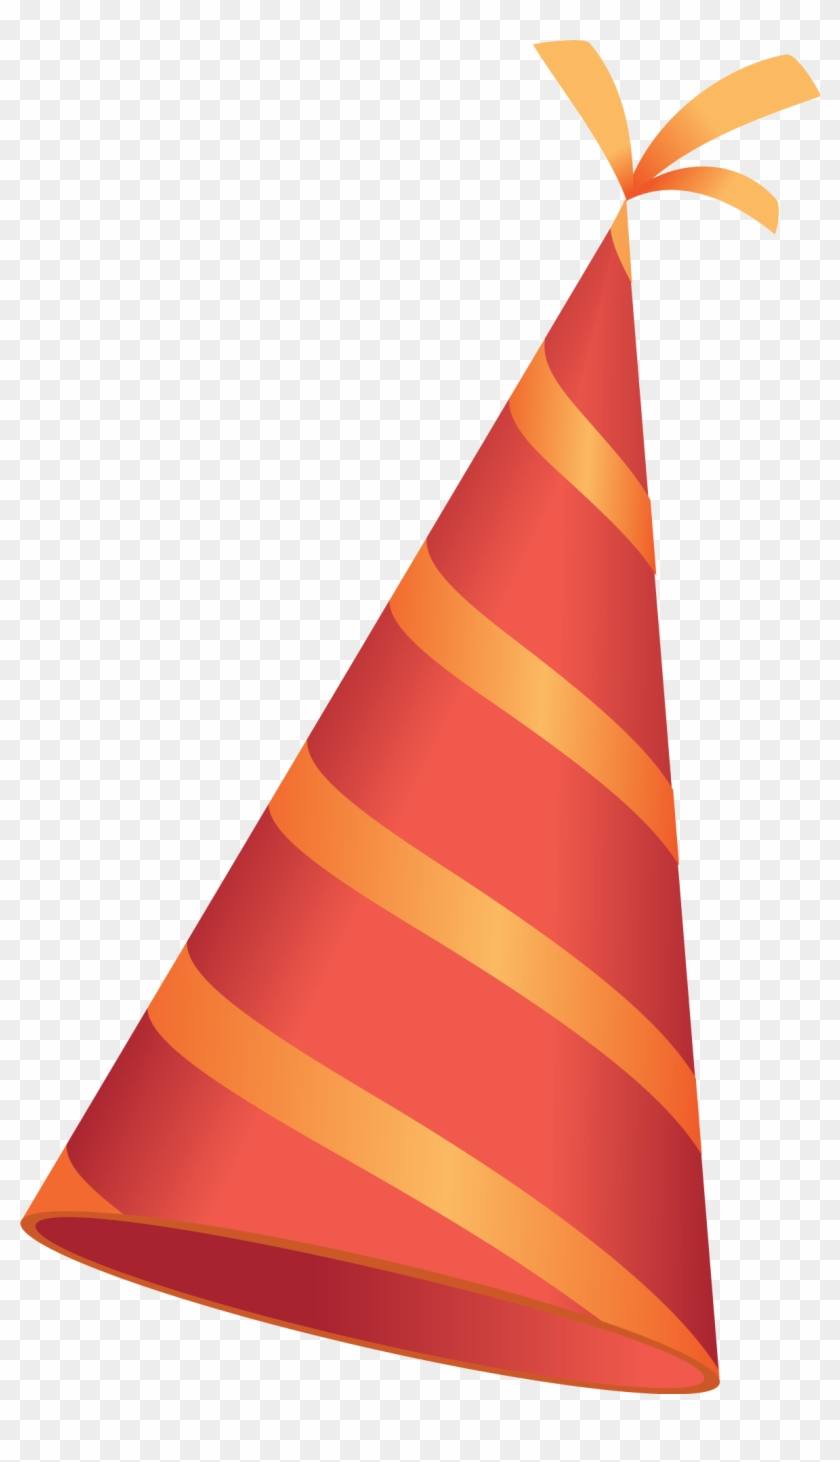 840x1462 Birthday Hat Transparent Clipart Free Clip Art Images